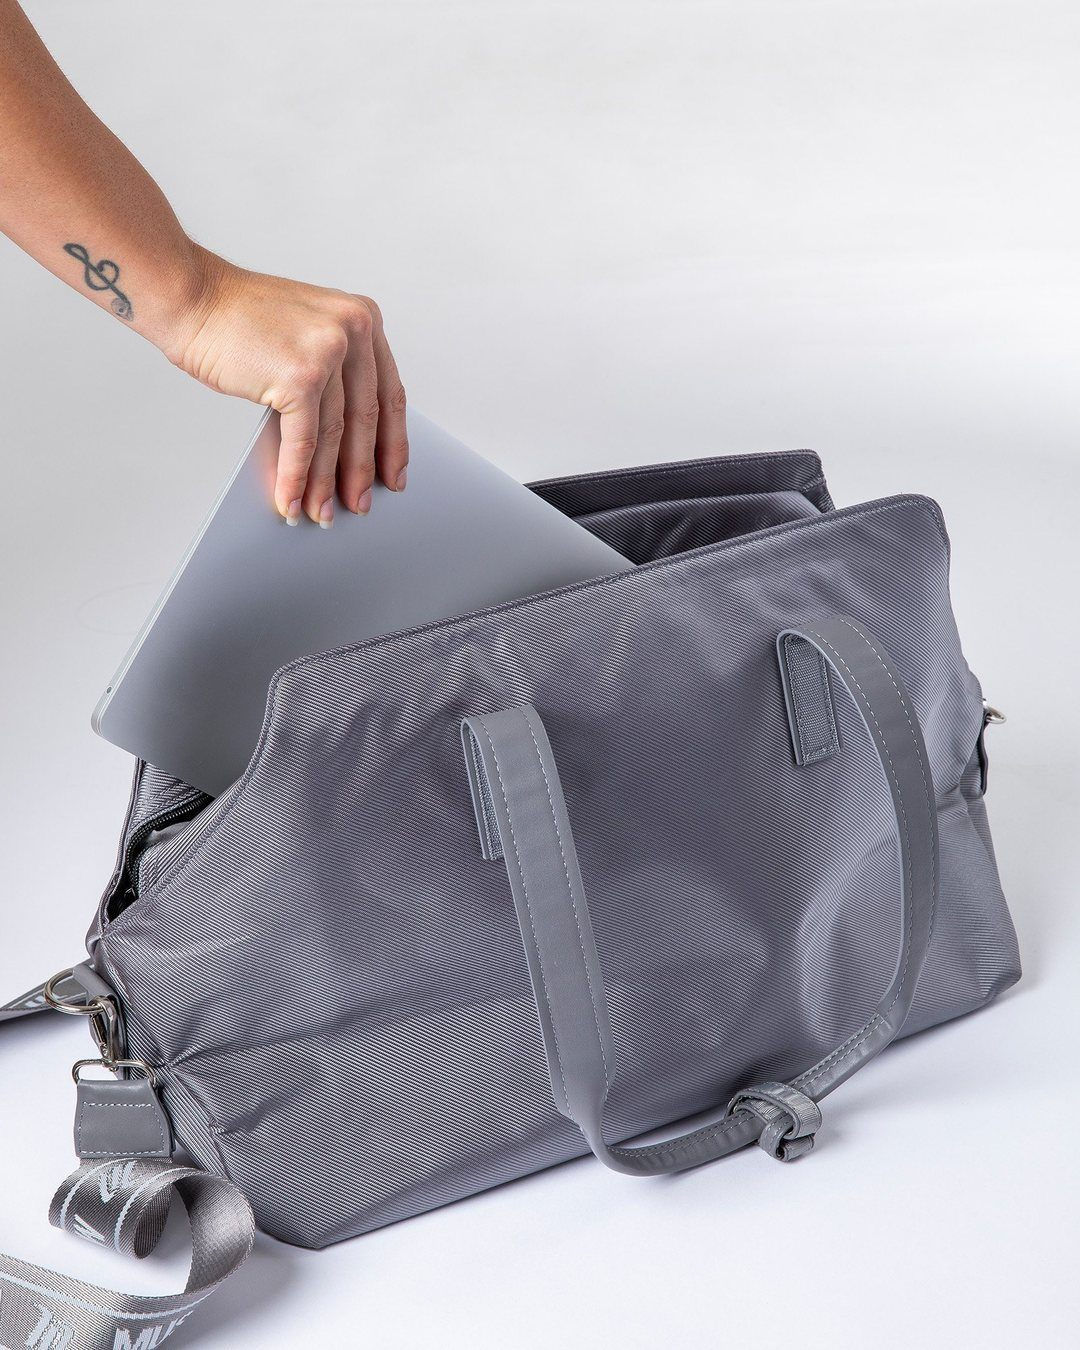 Muscle Nation Luxe Gym Bag - Silver